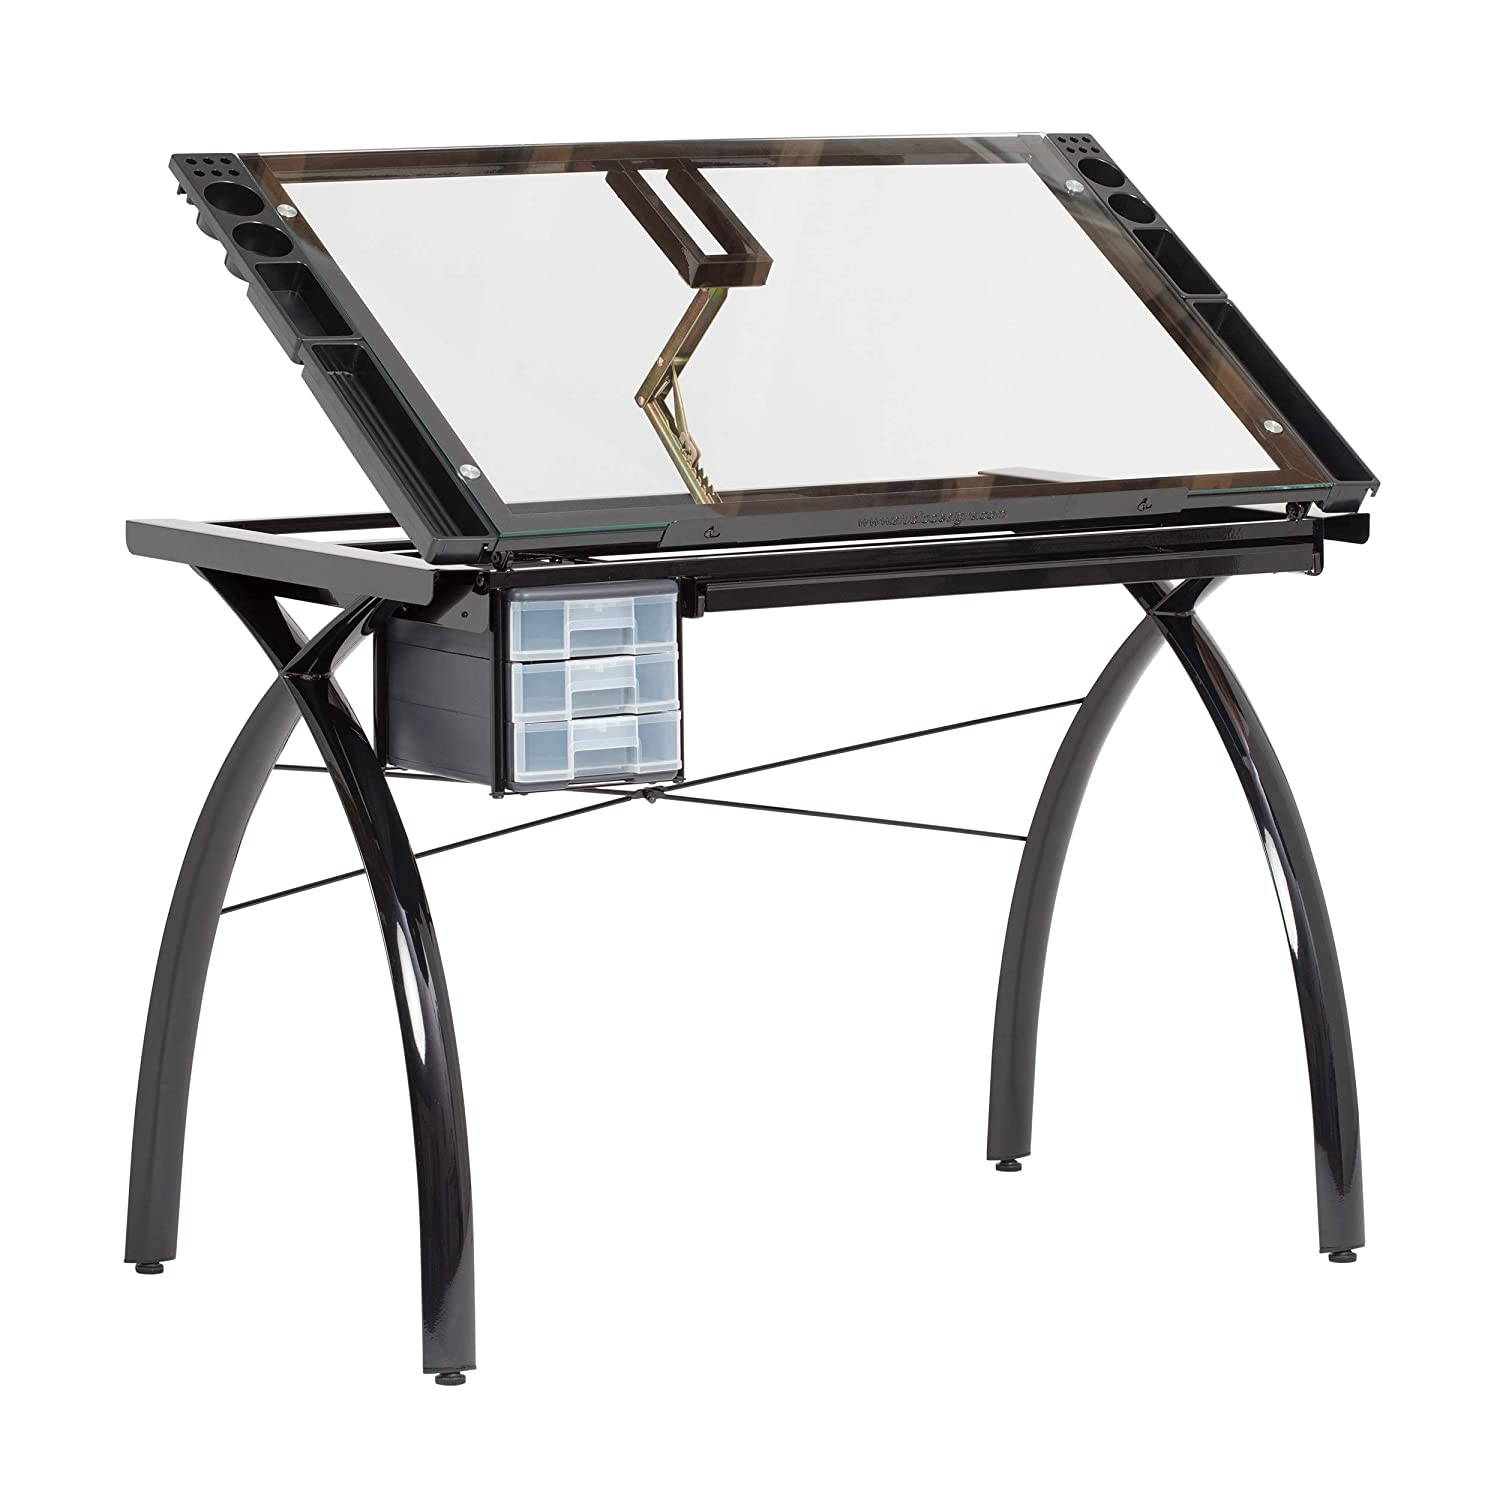 Marvelous Sd Studio Designs Futura Modern Glass Top Adjustable Drafting Table Craft Table Drawing Desk Hobby Table Writing Desk Studio Desk With Drawers 38W Gmtry Best Dining Table And Chair Ideas Images Gmtryco